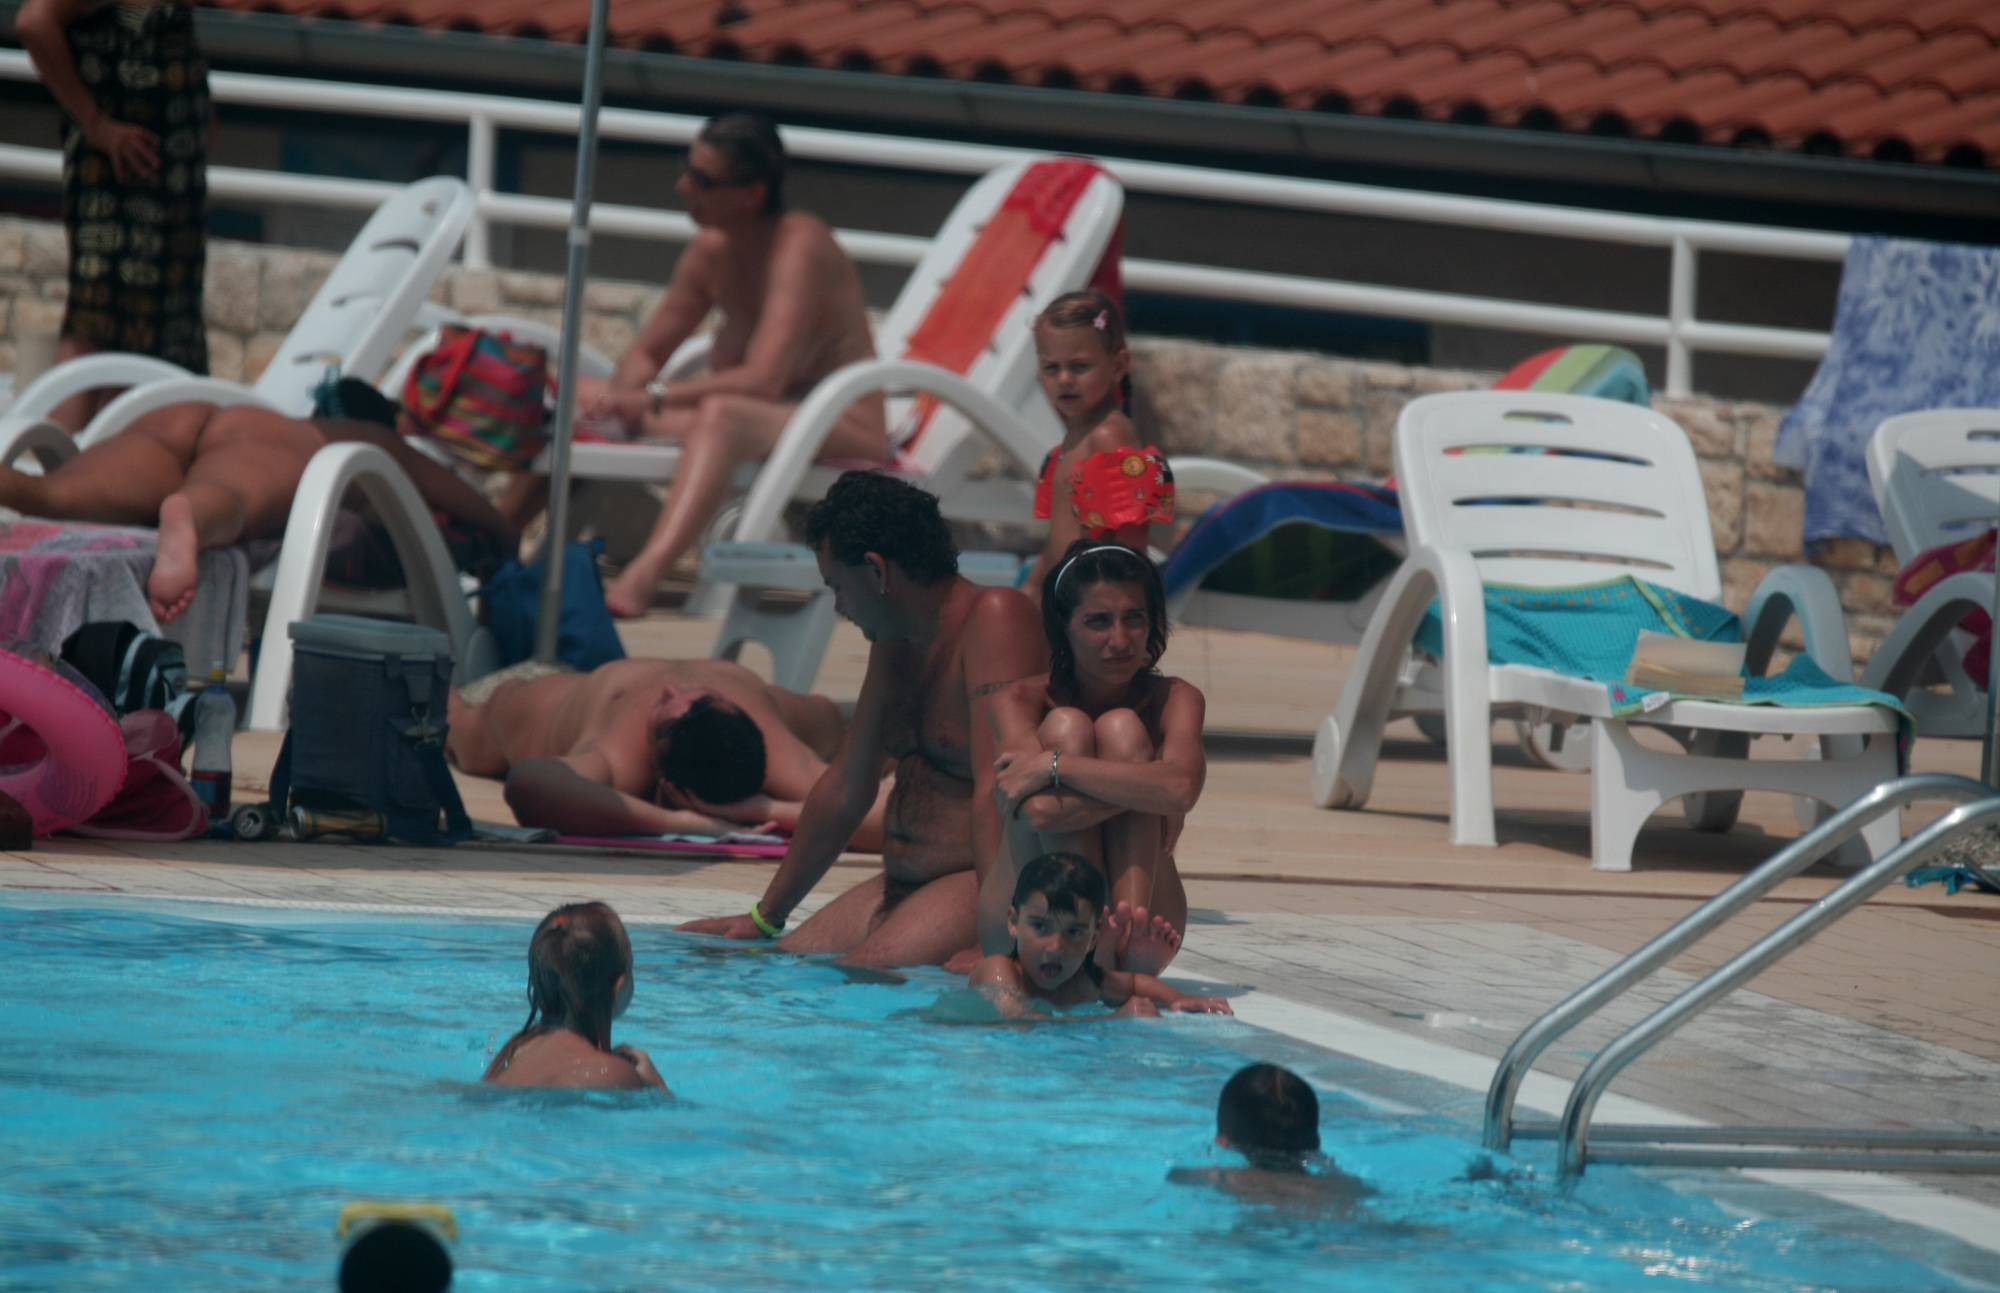 Naturist Pool Youngsters - 1